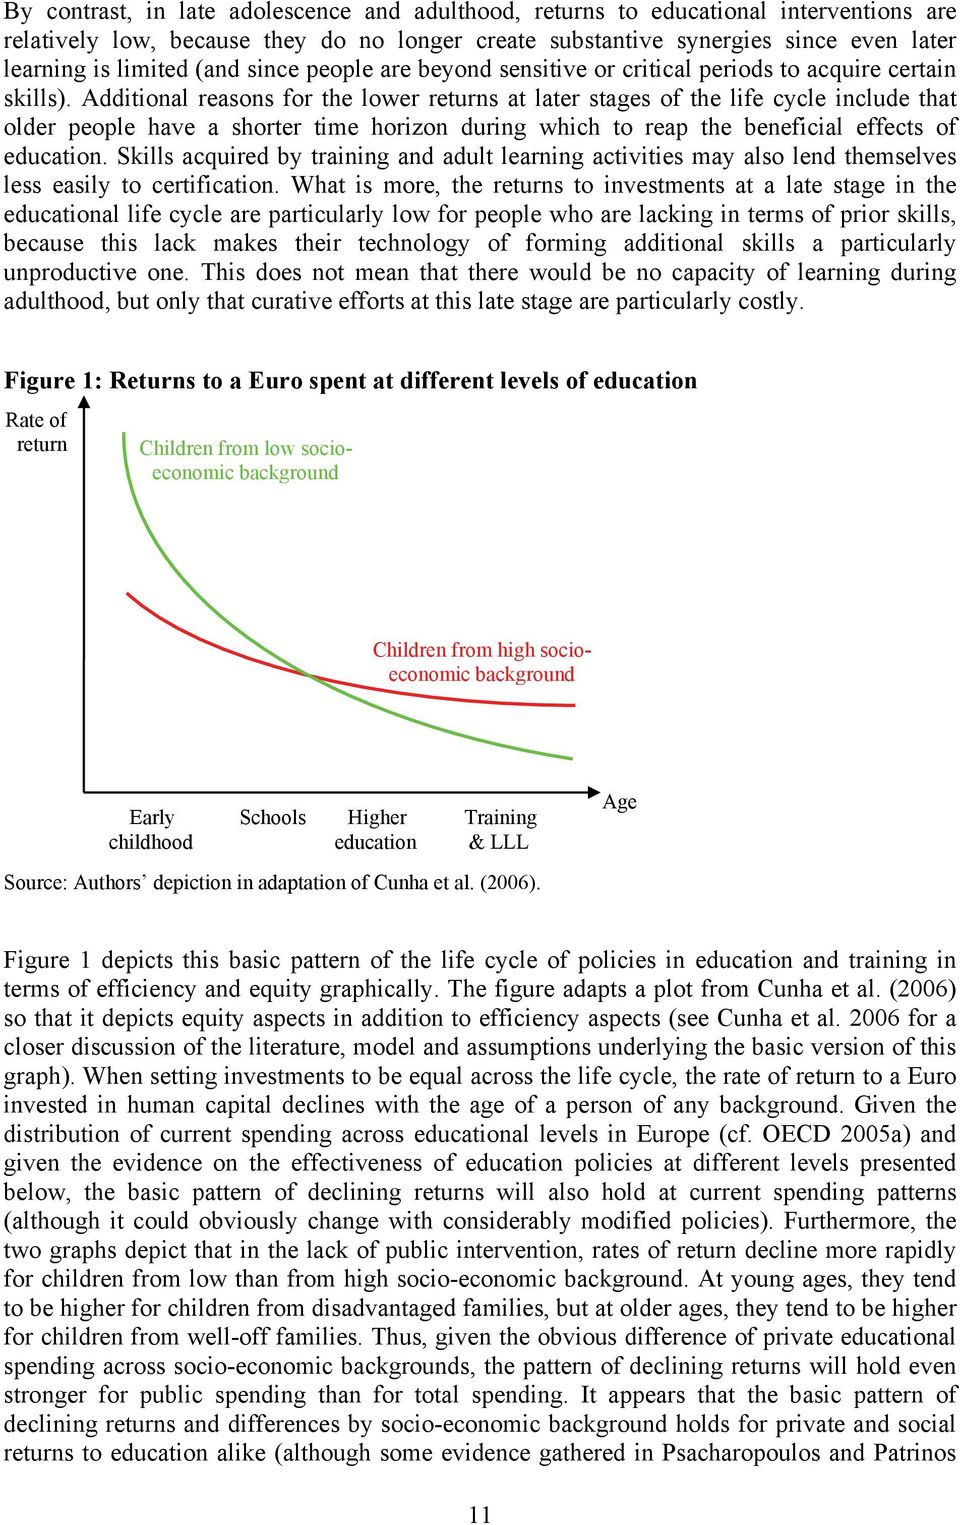 Additional reasons for the lower returns at later stages of the life cycle include that older people have a shorter time horizon during which to reap the beneficial effects of education.